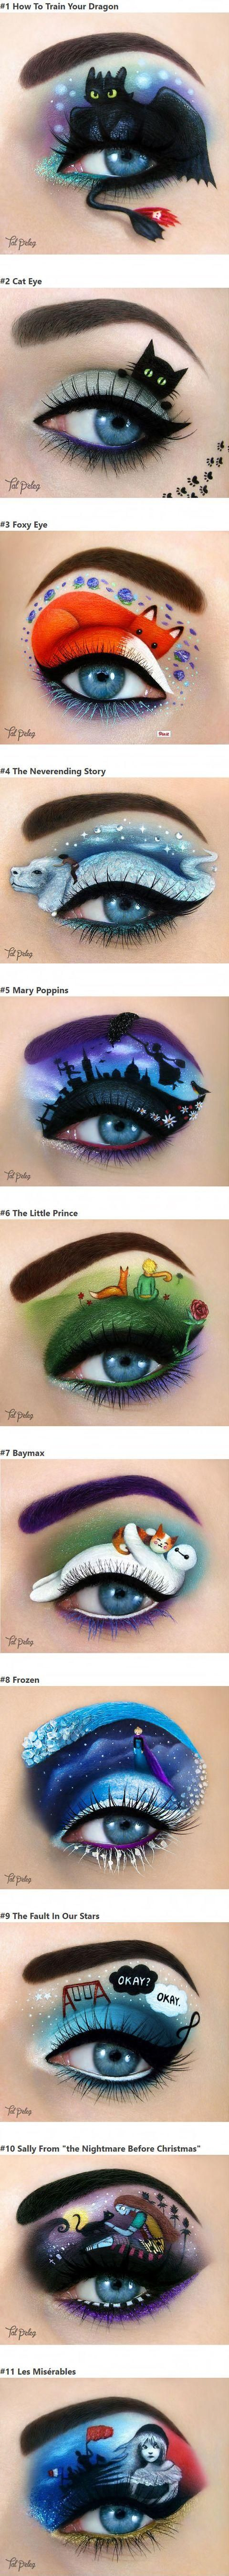 Artist Uses Her Eyes To Create Amazing Fairy Tale Art